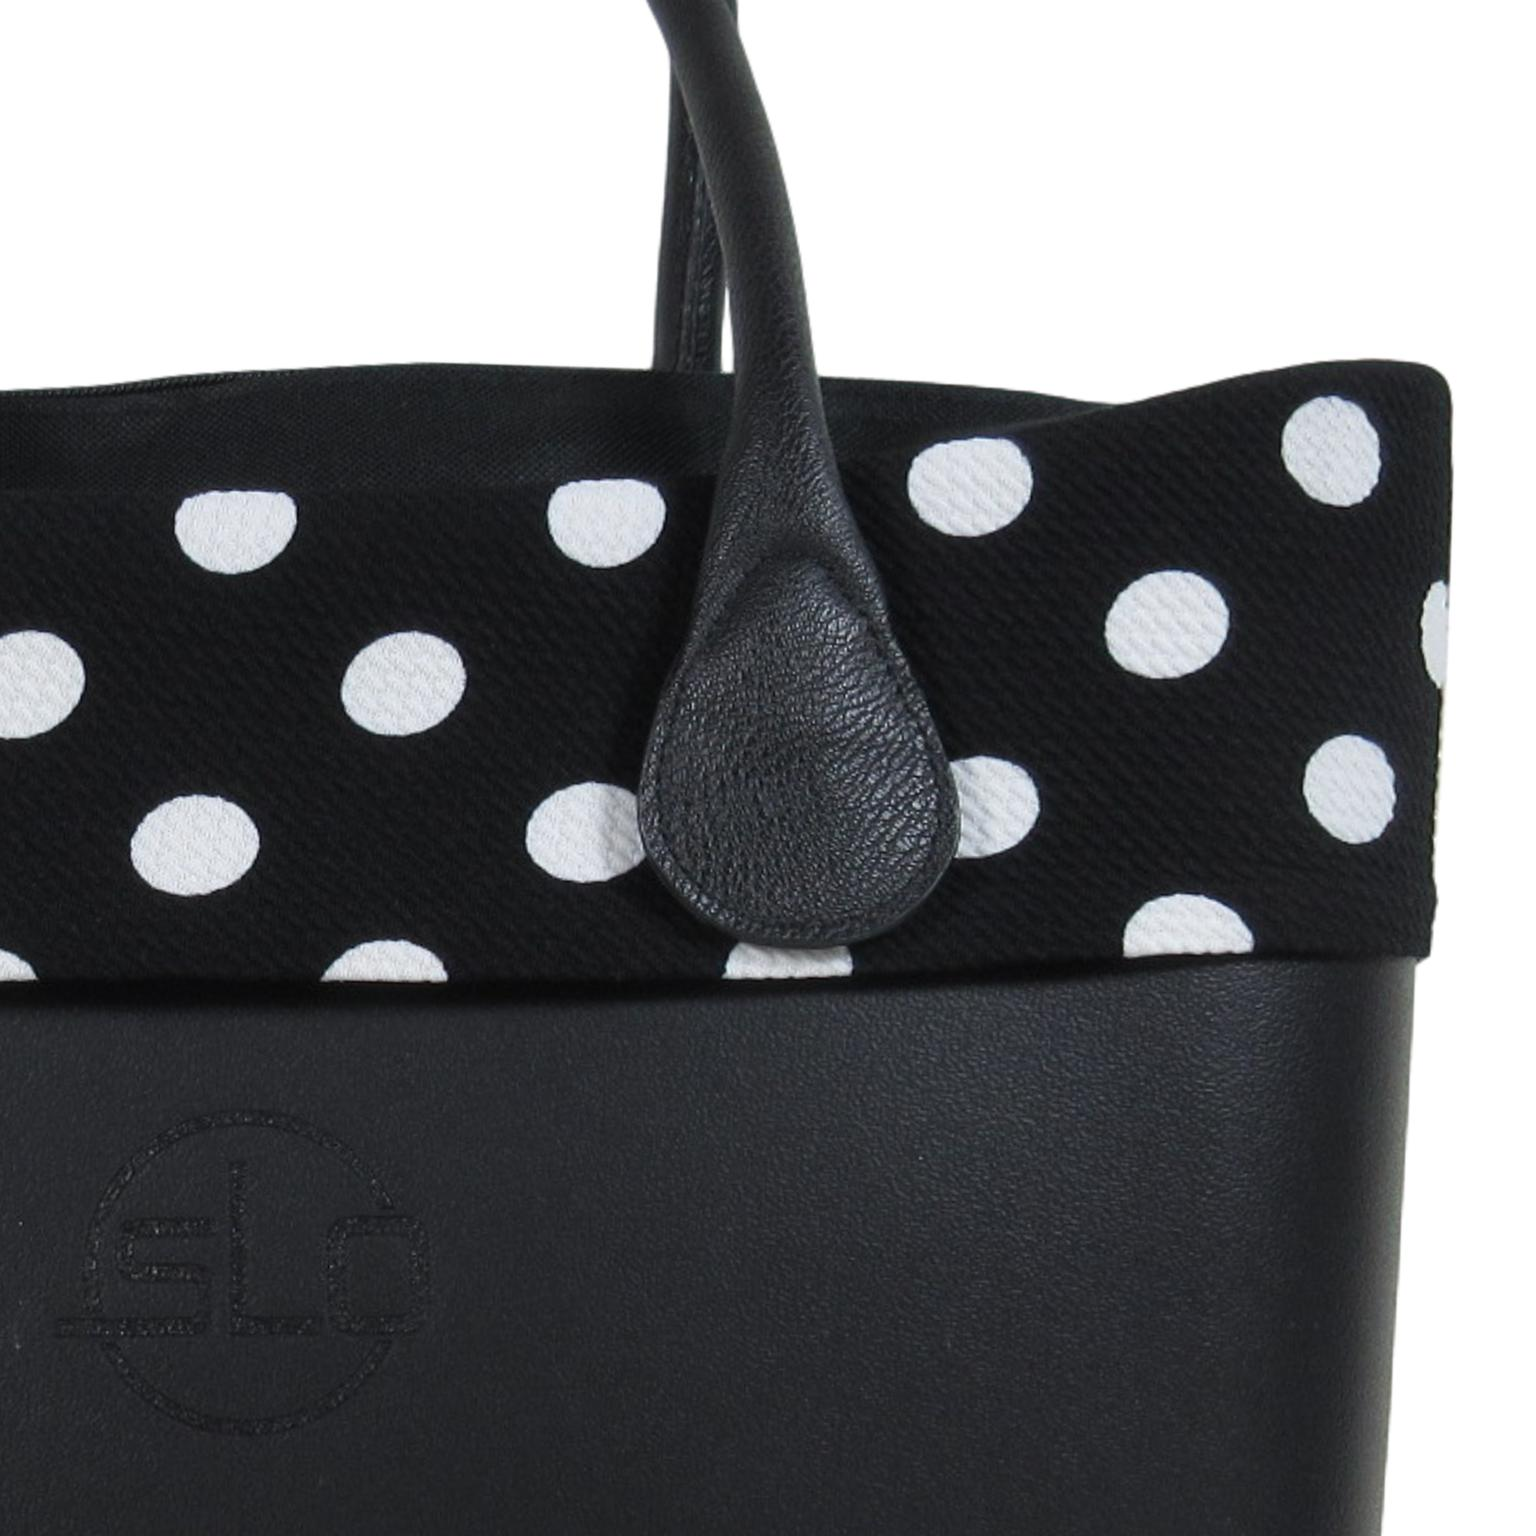 SLO Fashion Knit Polka Dot Trim accessory